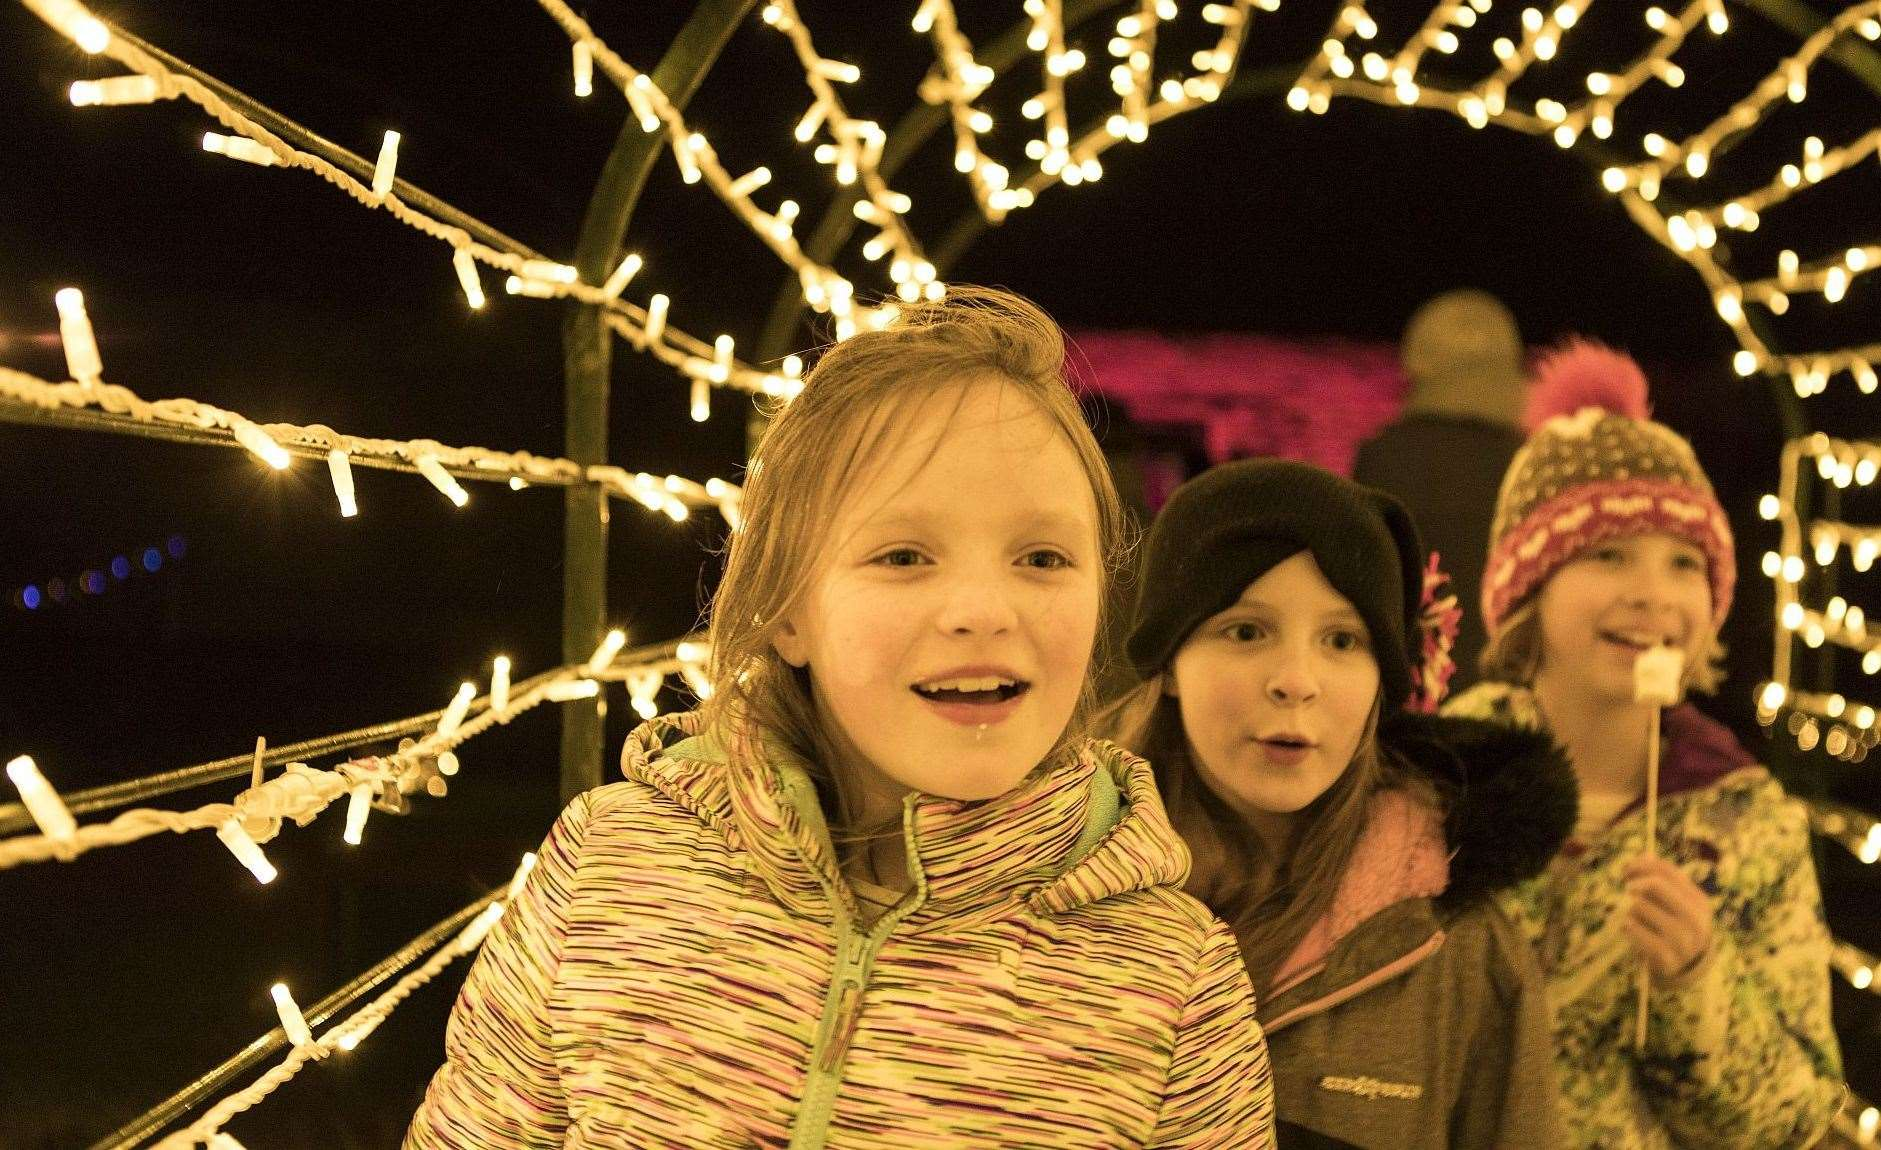 Walmer Castle and Gardens will have a Christmas lights trail